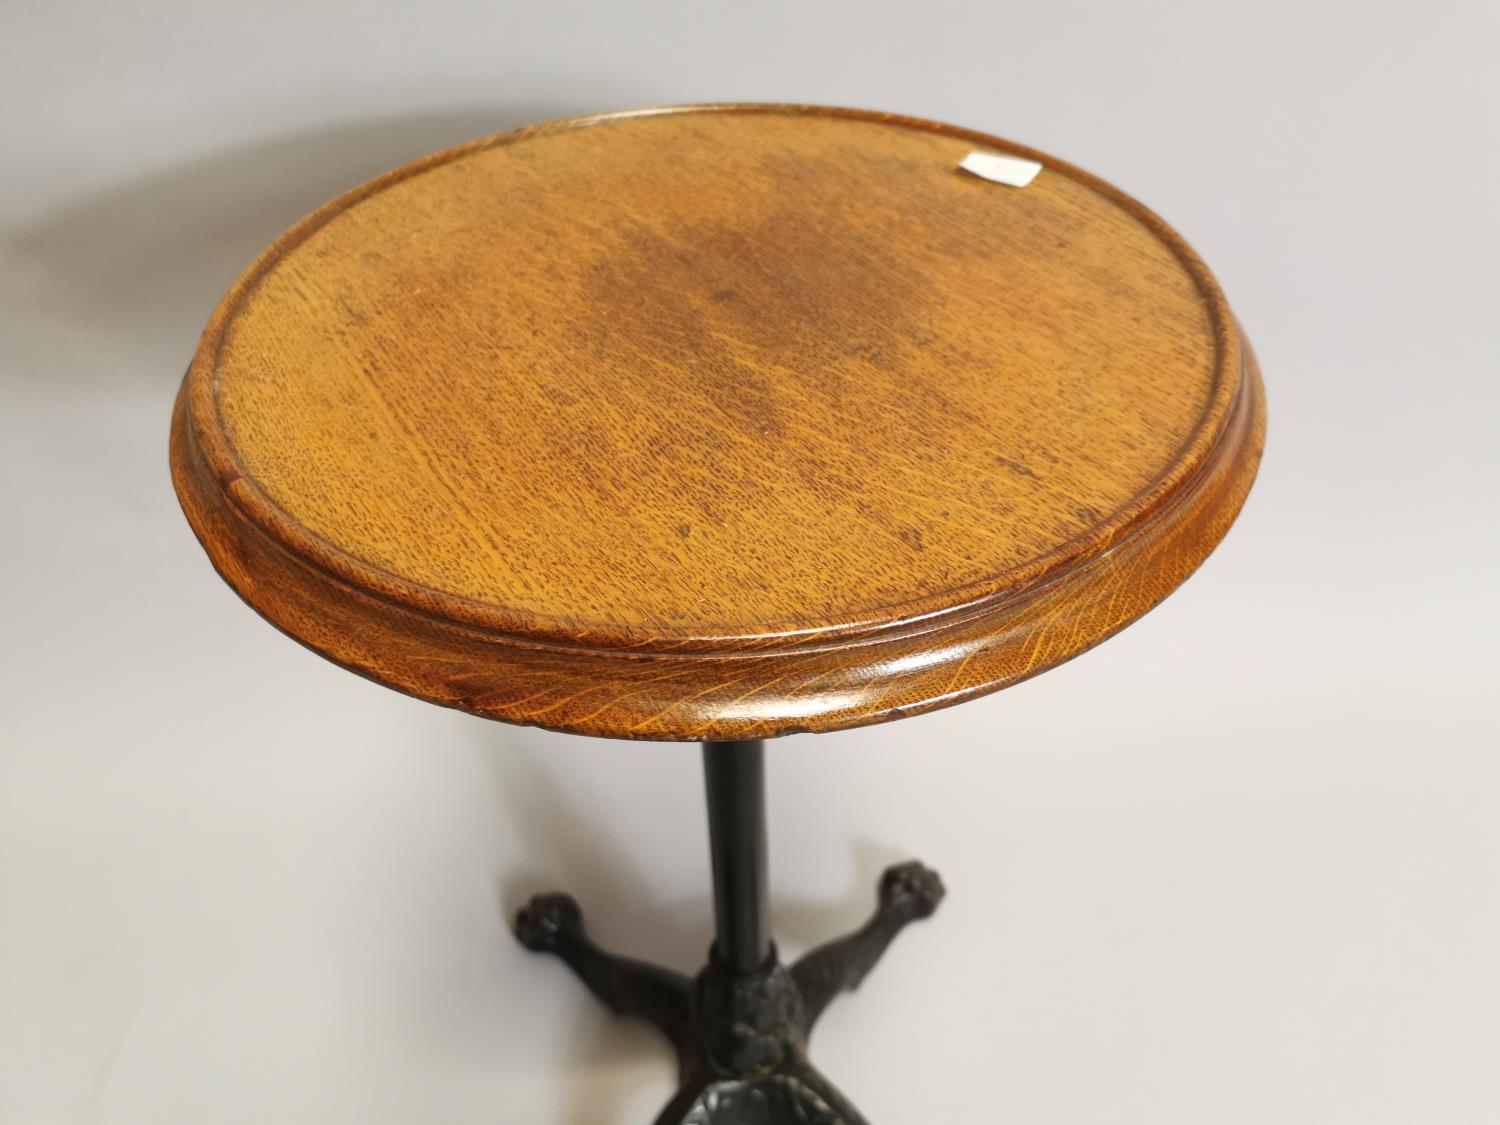 Early 20th. C. wine table - Image 3 of 5